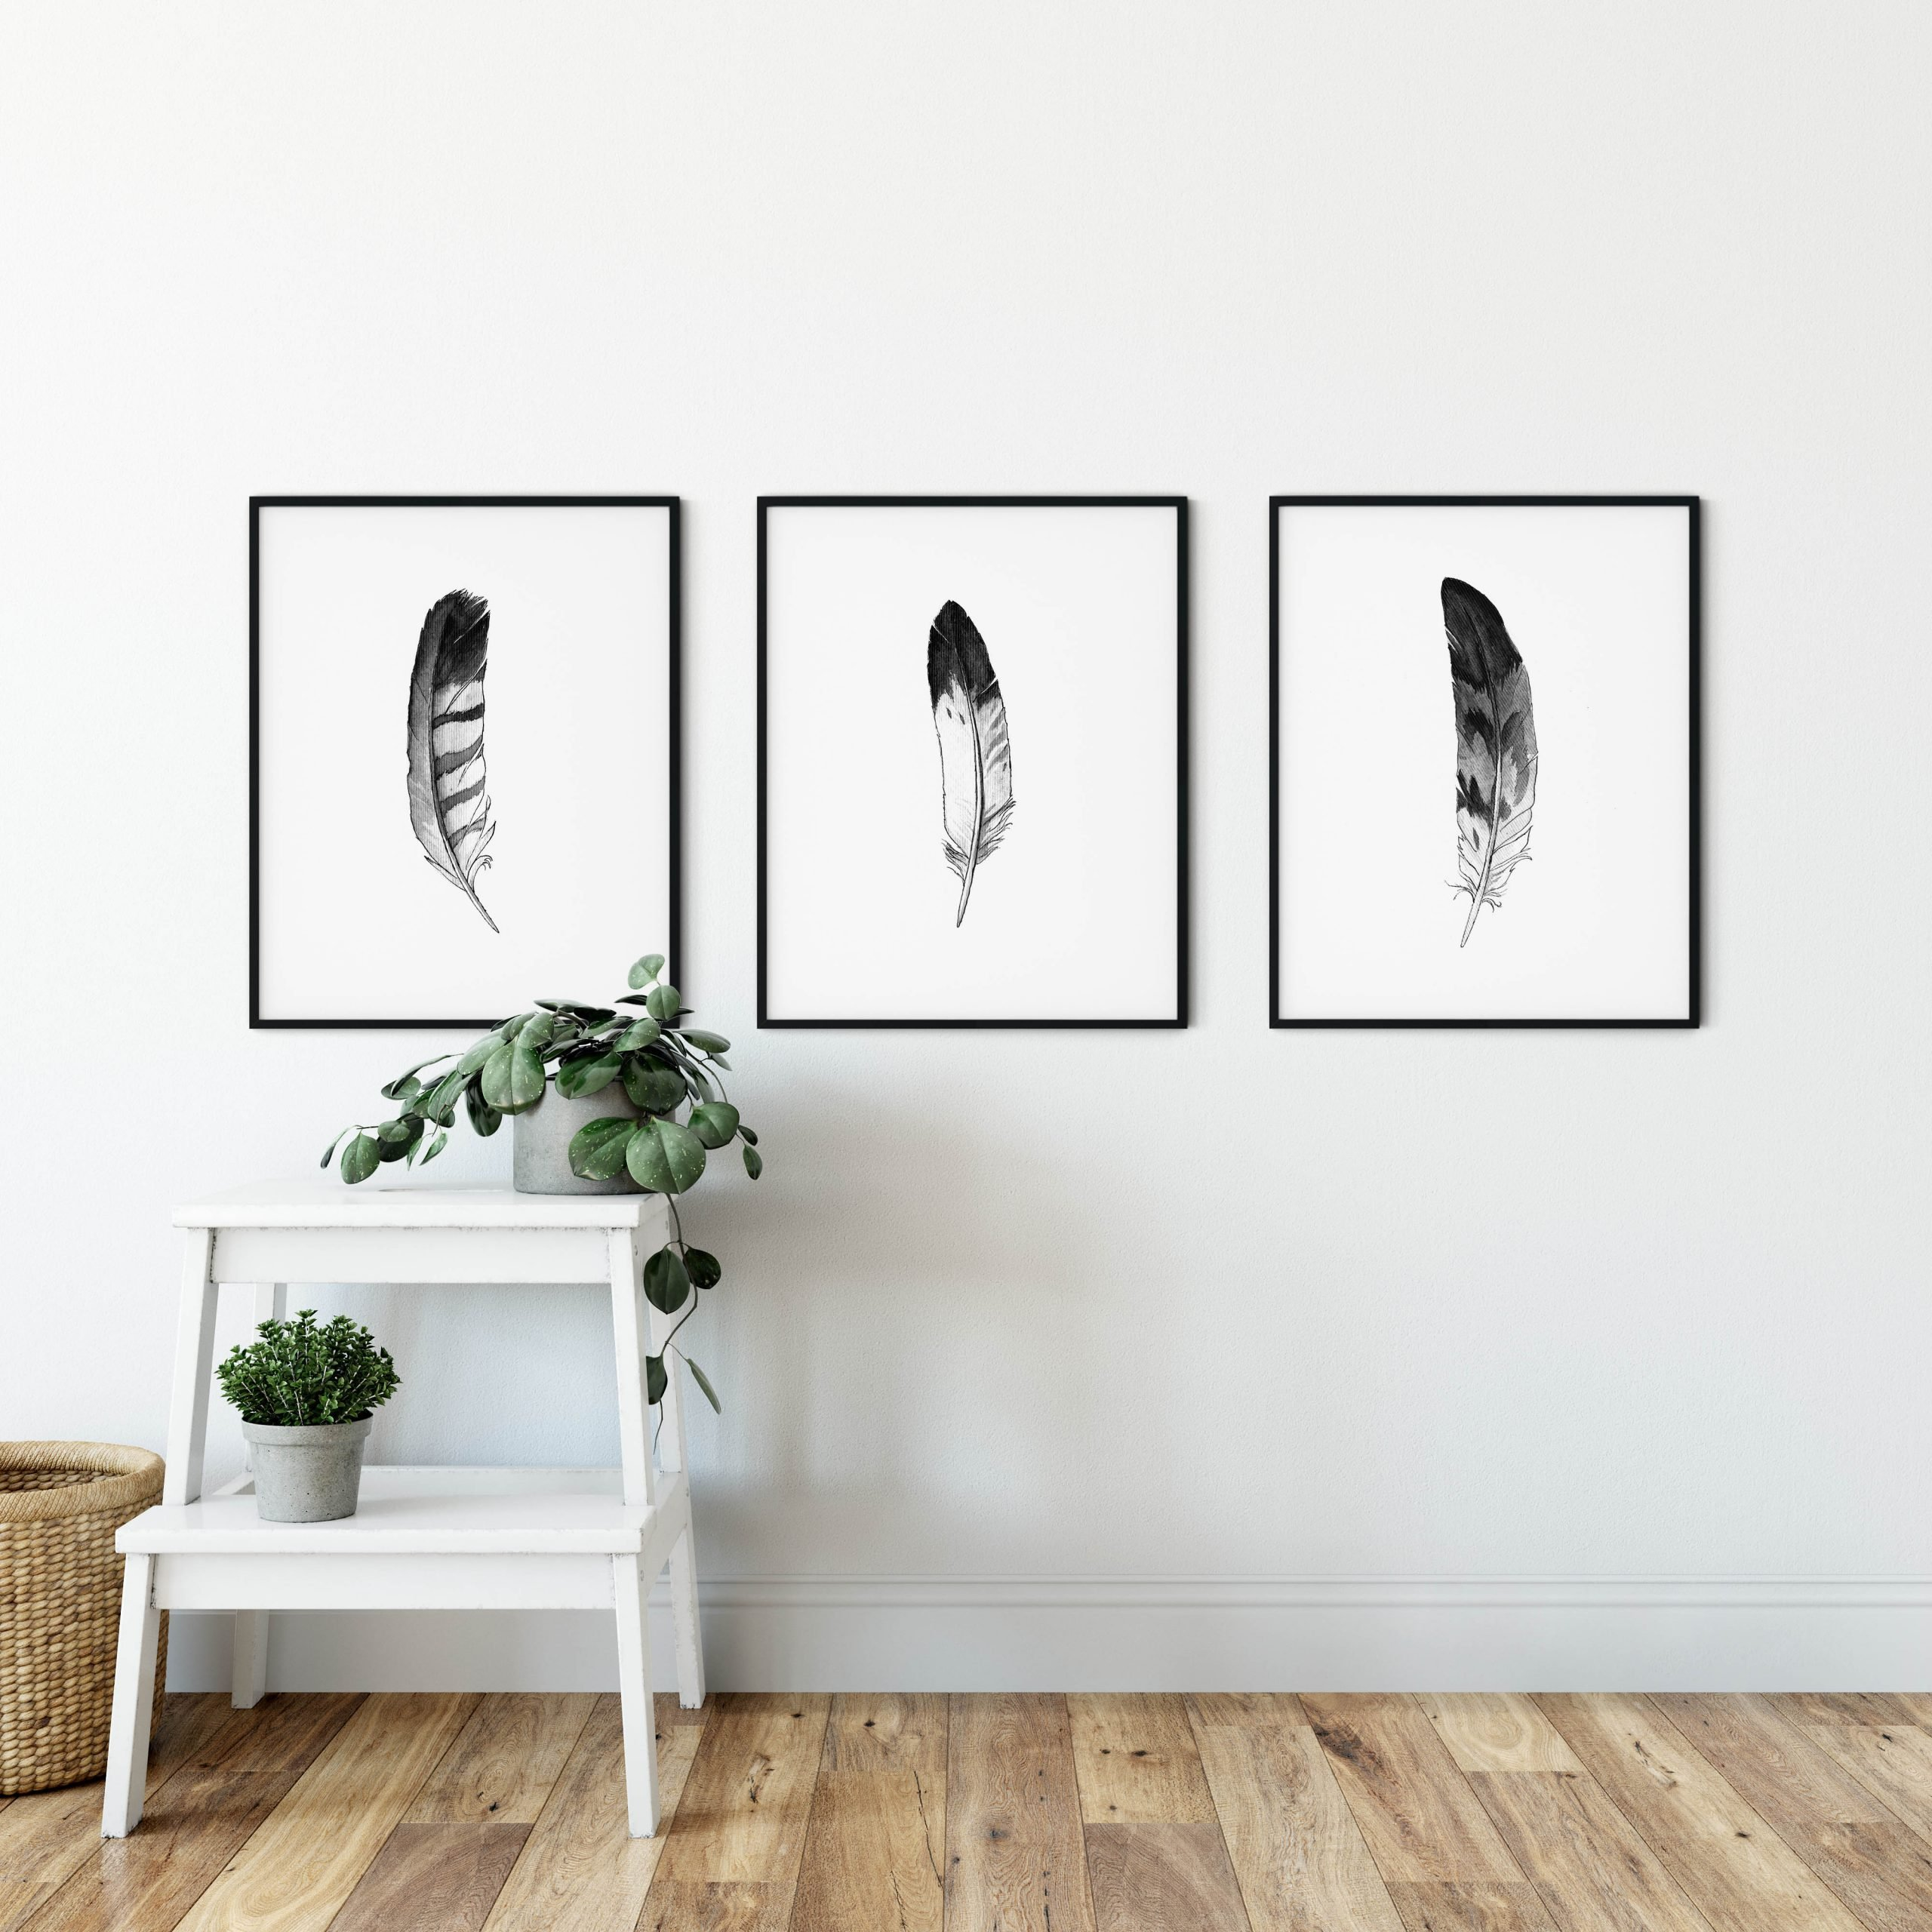 feathers-wall-decor-prints-set-3-black-and-white